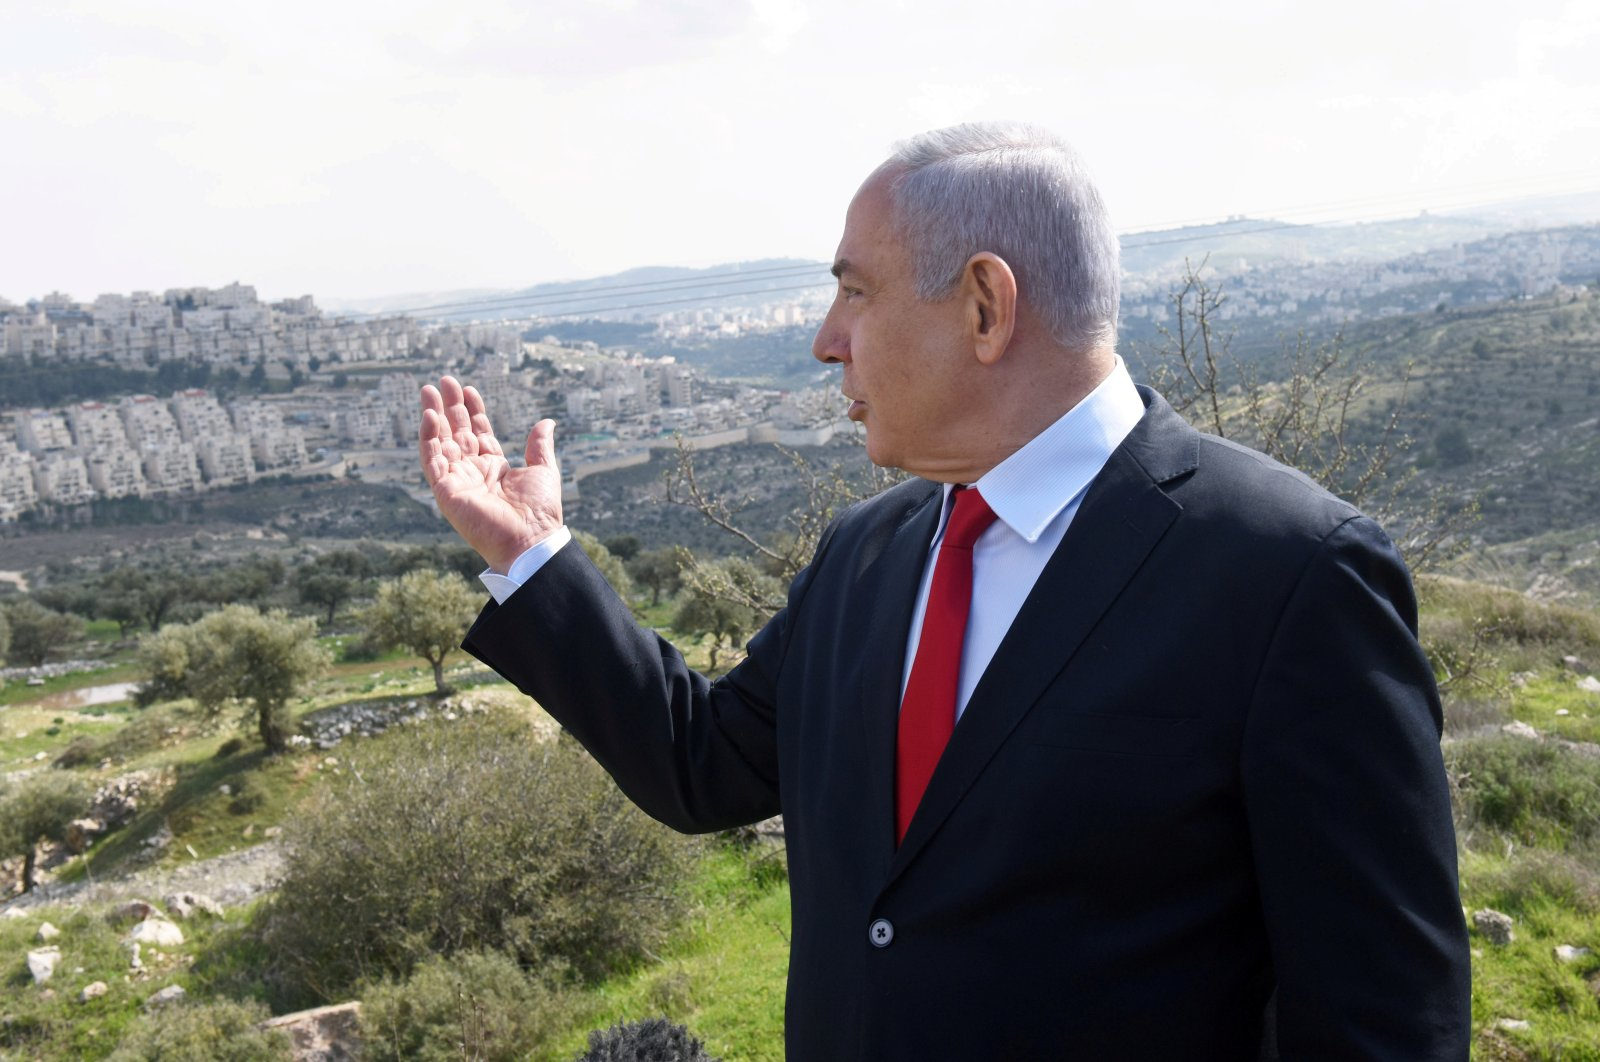 Israeli Prime Minister Benjamin Netanyahu delivers a statement overlooking the Israeli settlement of Har Homa, occupied West Bank, Palestine, Feb. 20, 2020. (Reuters Photo)